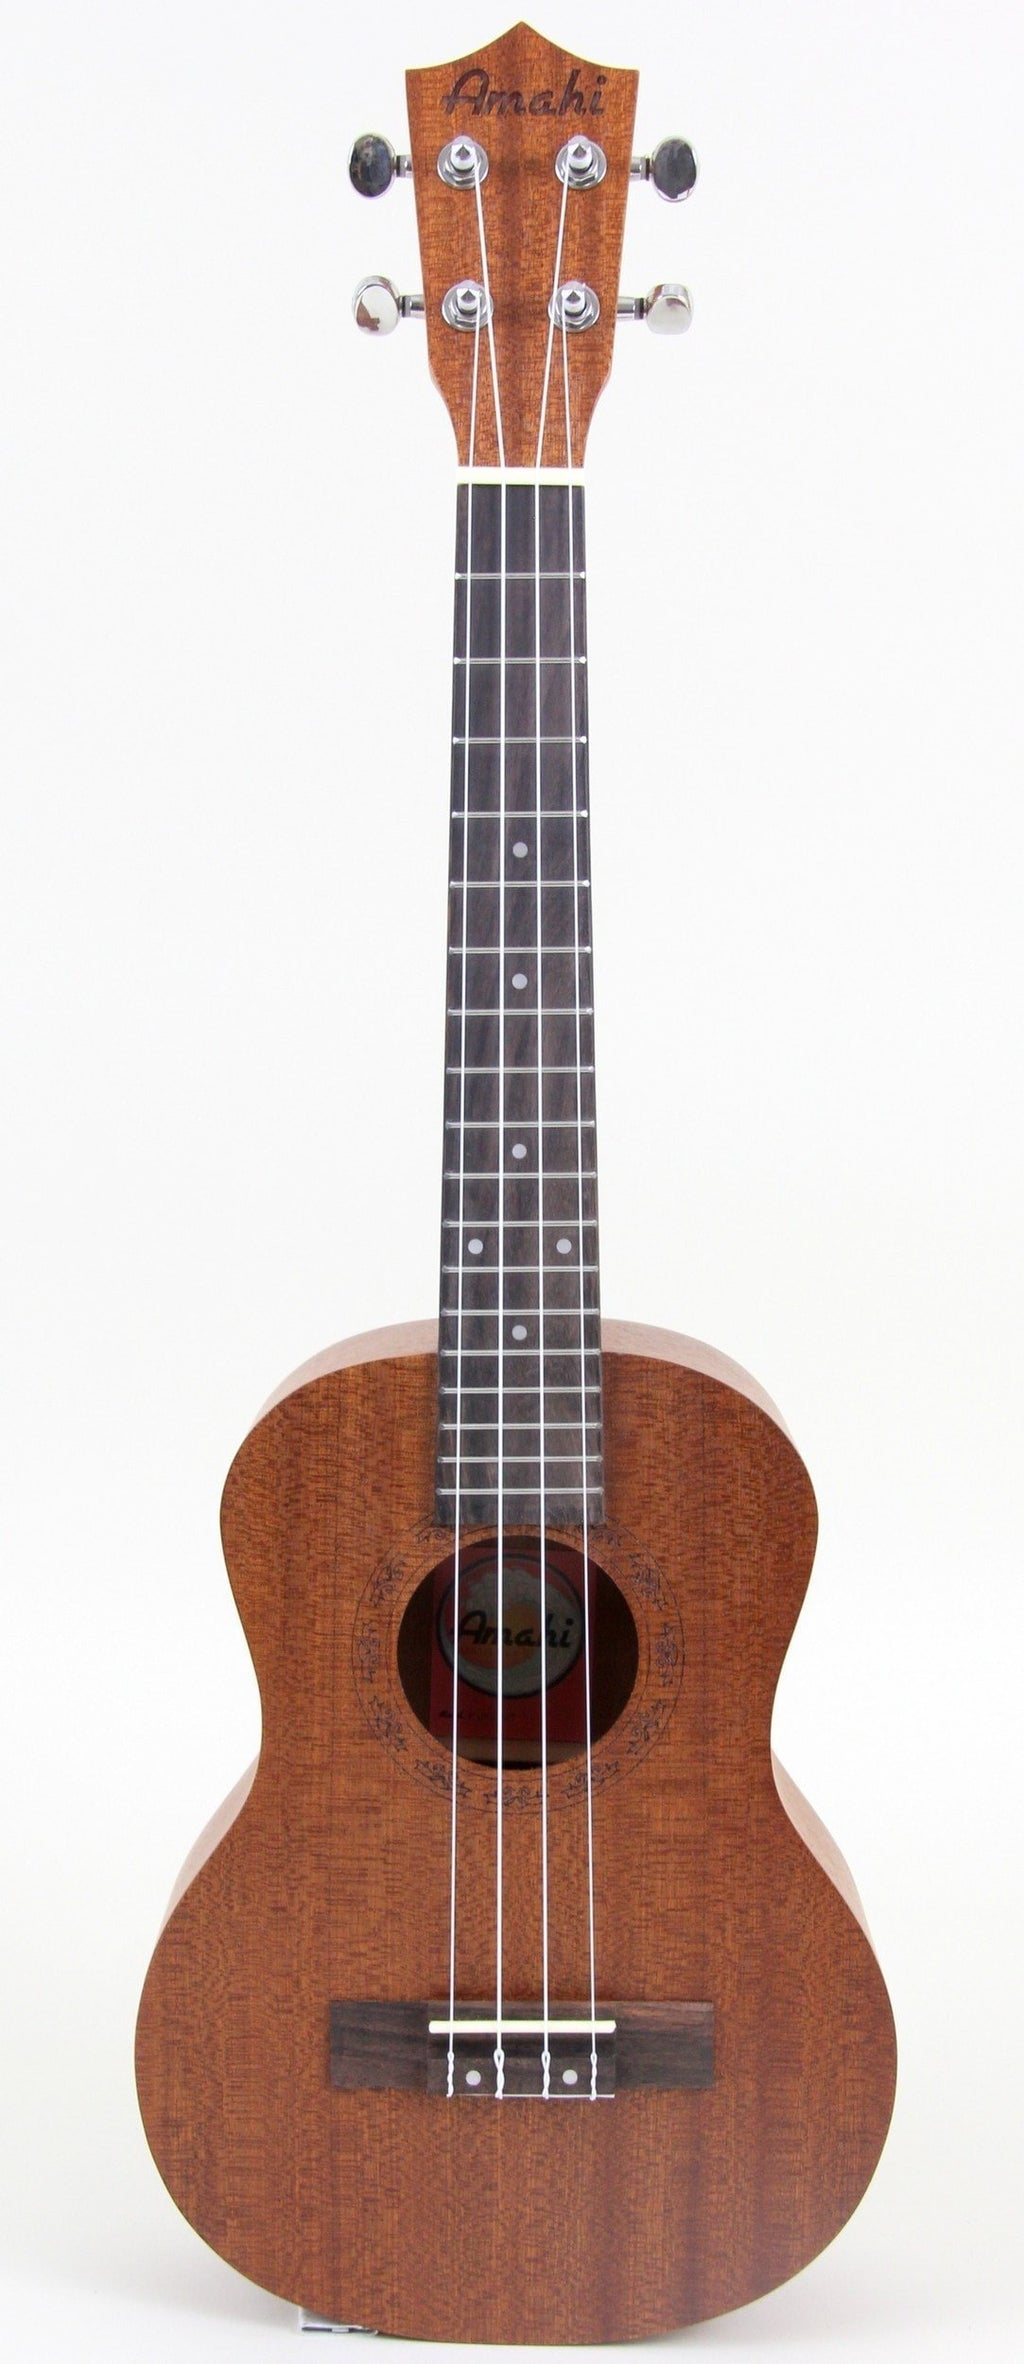 Store Demo | Amahi UK210 Select Mahogany Series Ukulele | Includes Deluxe Bag Concert